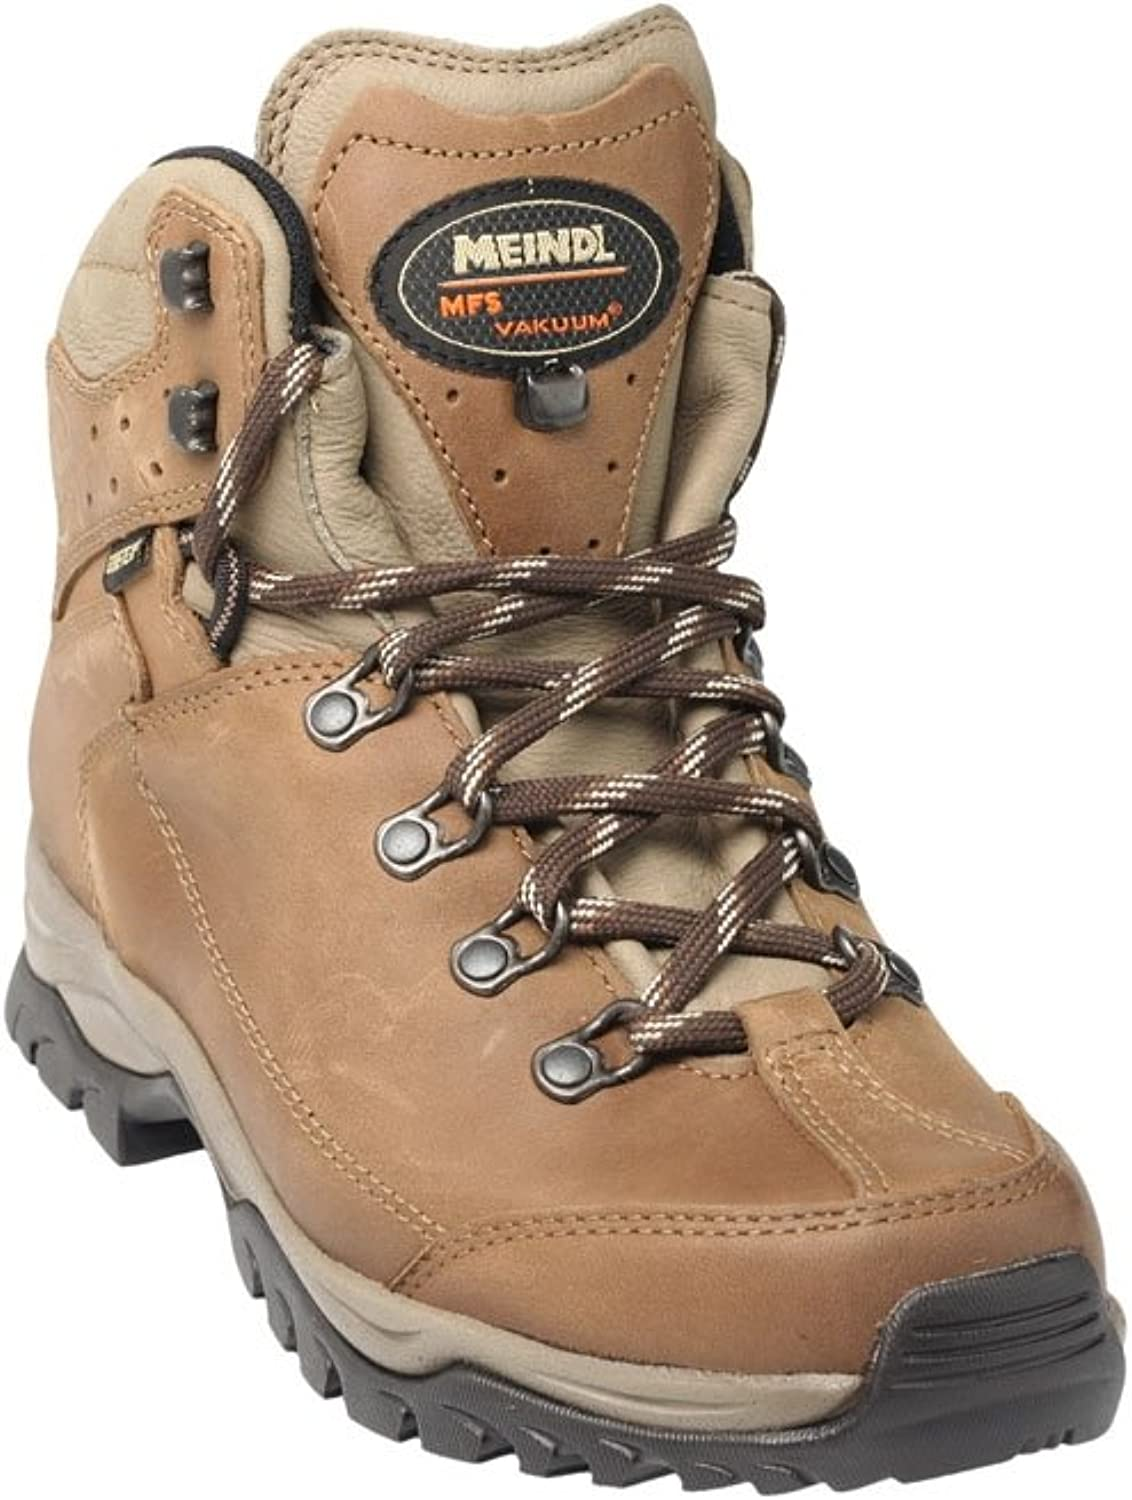 Meindl Vacuum Lady Ultra Leder brown Boots